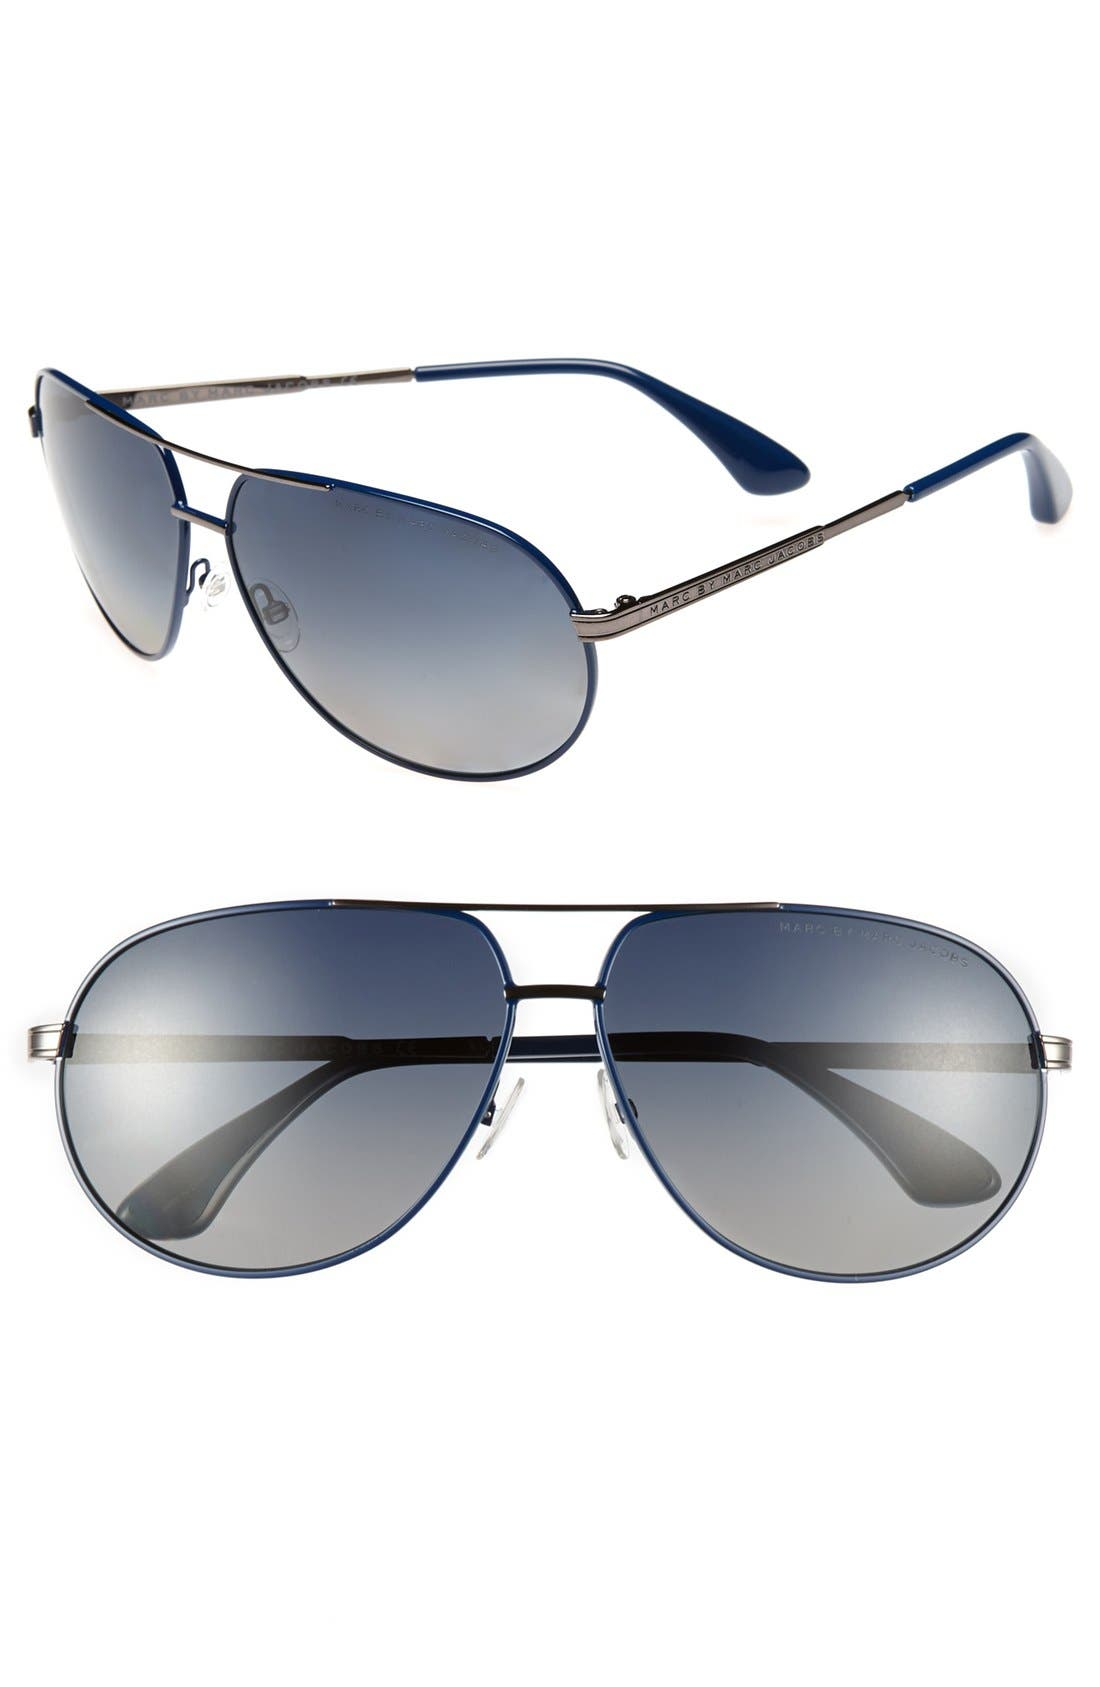 Main Image - MARC BY MARC JACOBS 63mm Polarized Aviator Sunglasses